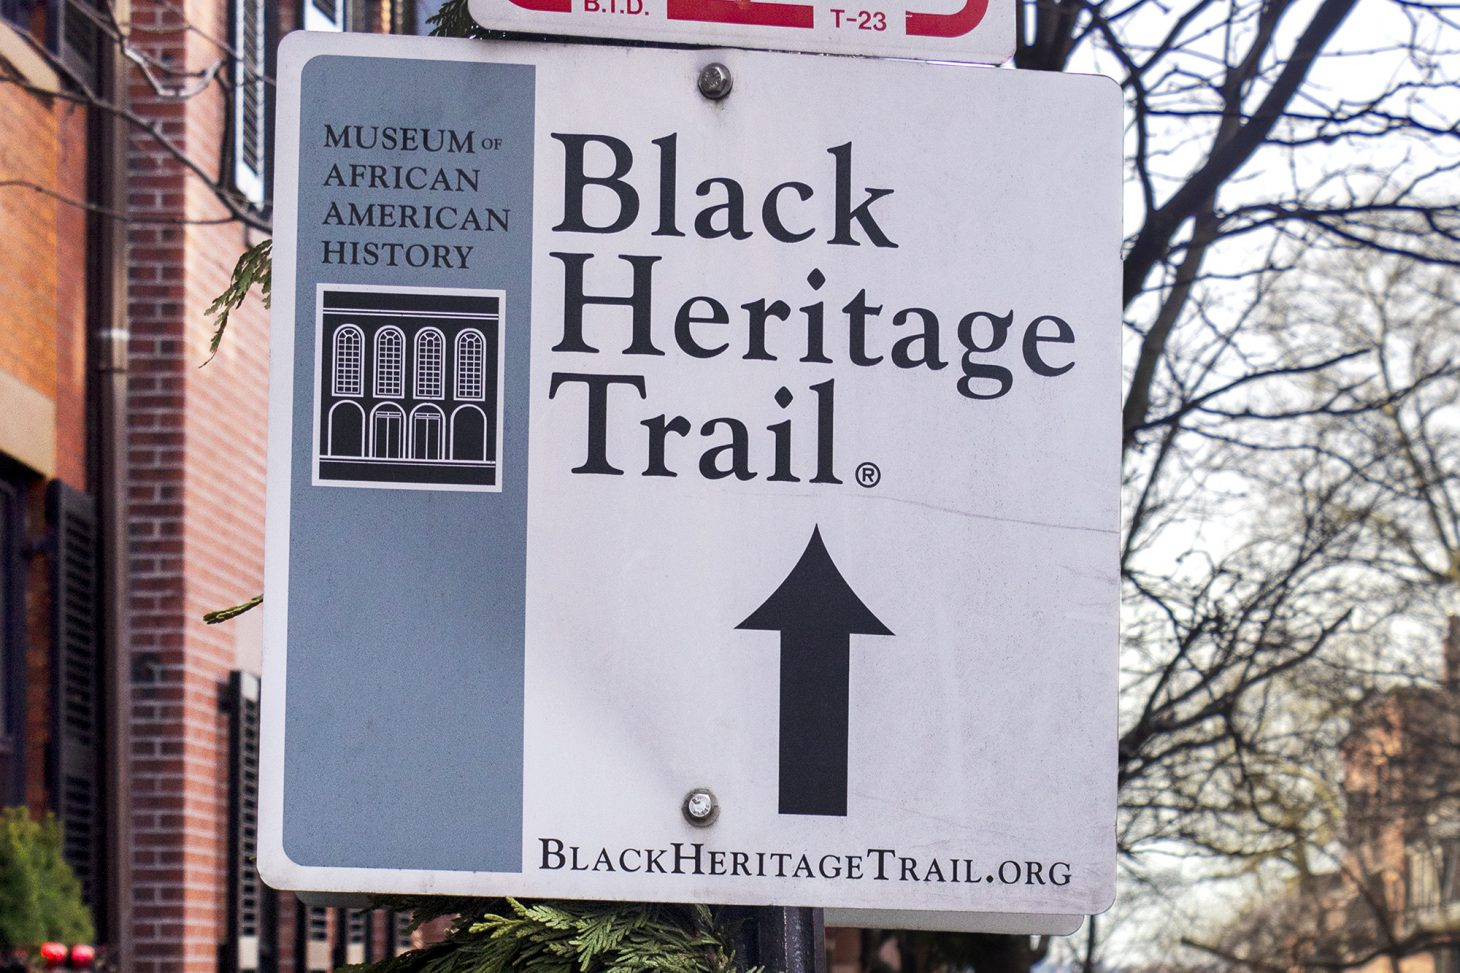 Black Heritage Trail, Boston